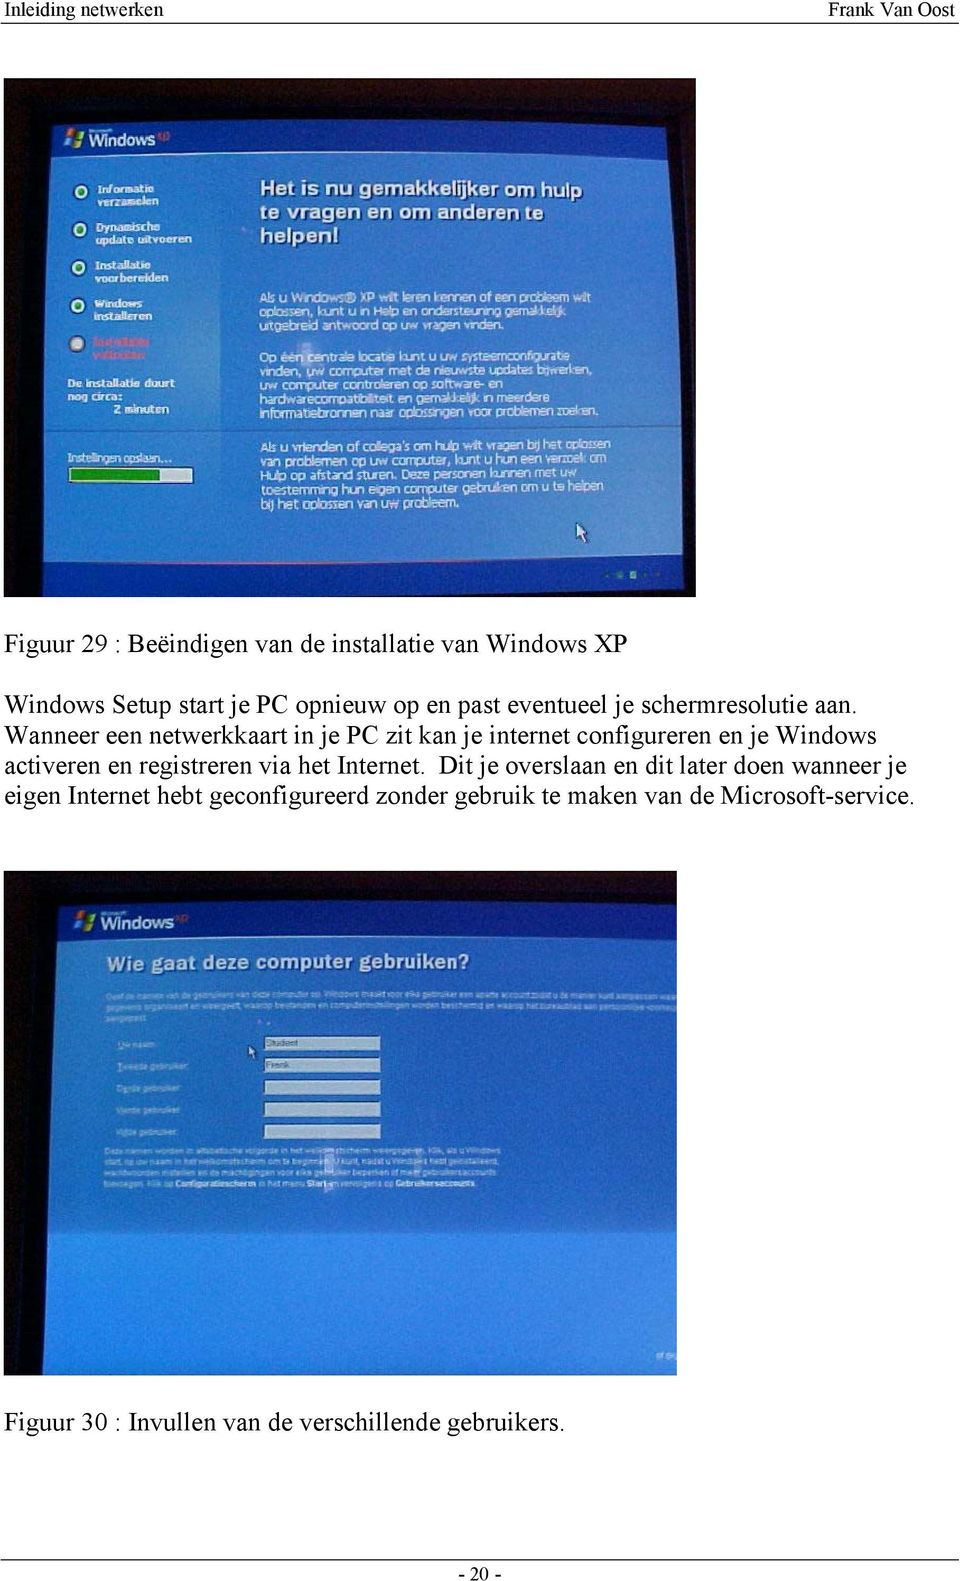 Wanneer een netwerkkaart in je PC zit kan je internet configureren en je Windows activeren en registreren via